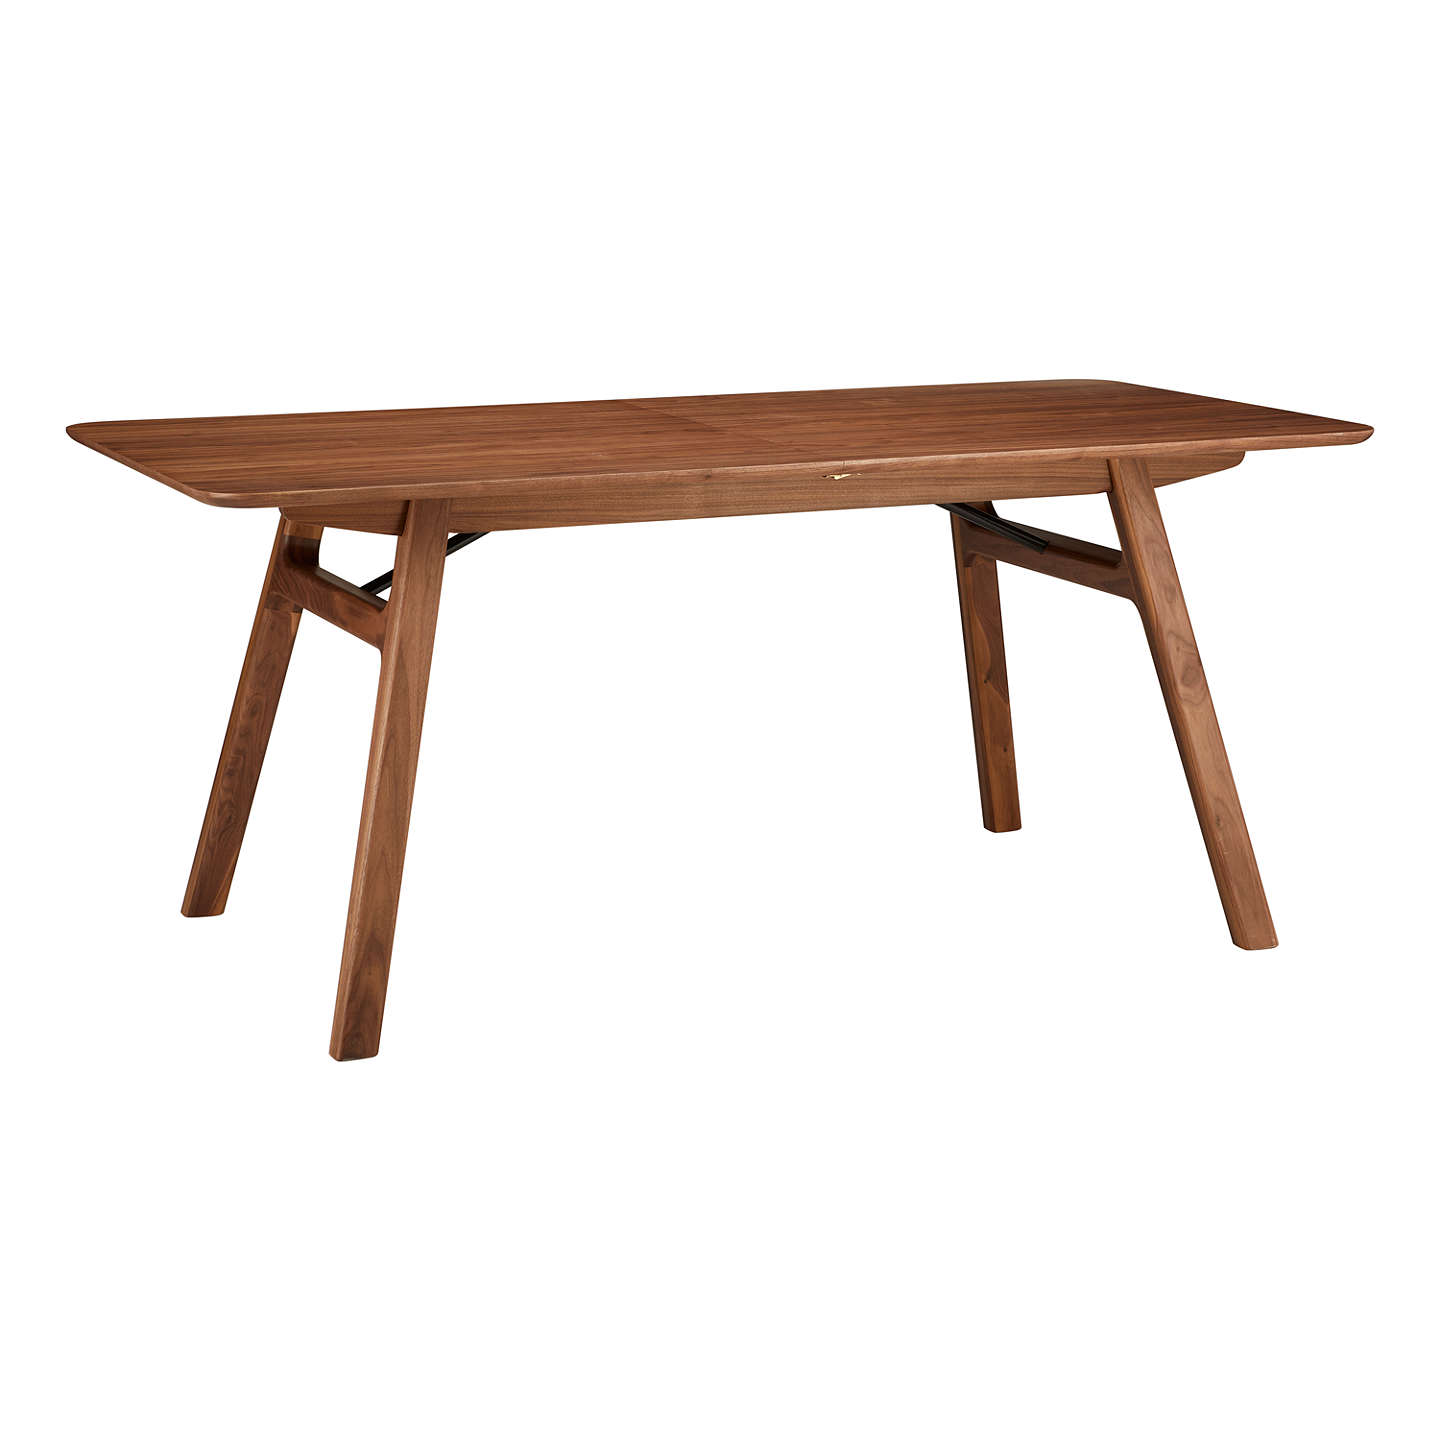 BuyDesign Project By John Lewis No.036 6 8 Seater Extending Dining Table,  ...